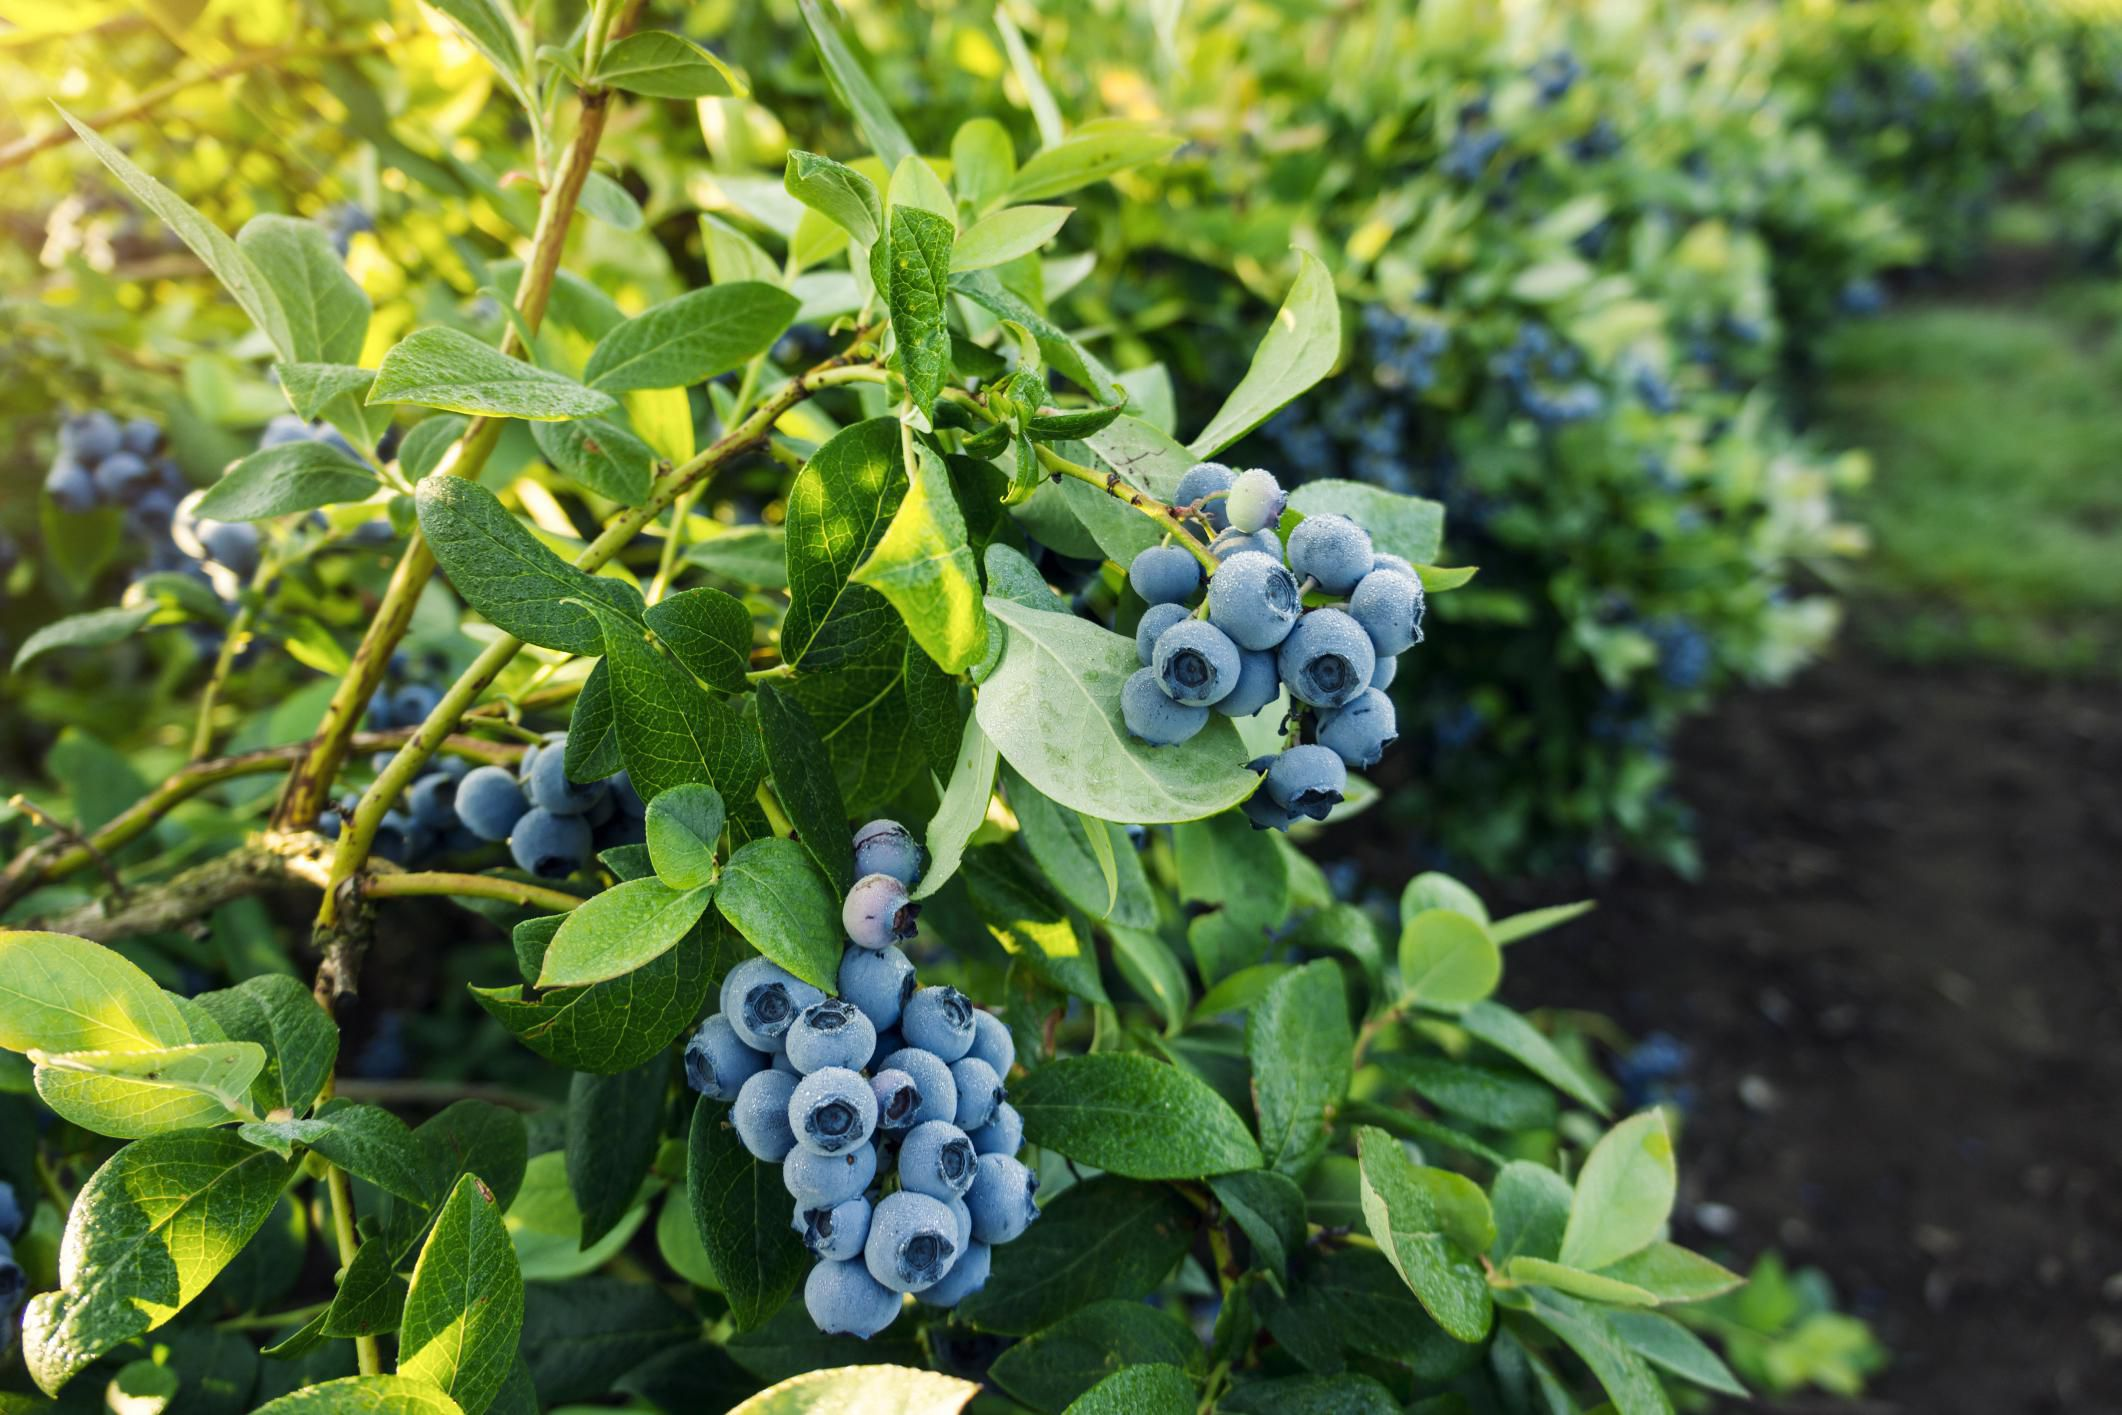 Blueberries Improve Fertility